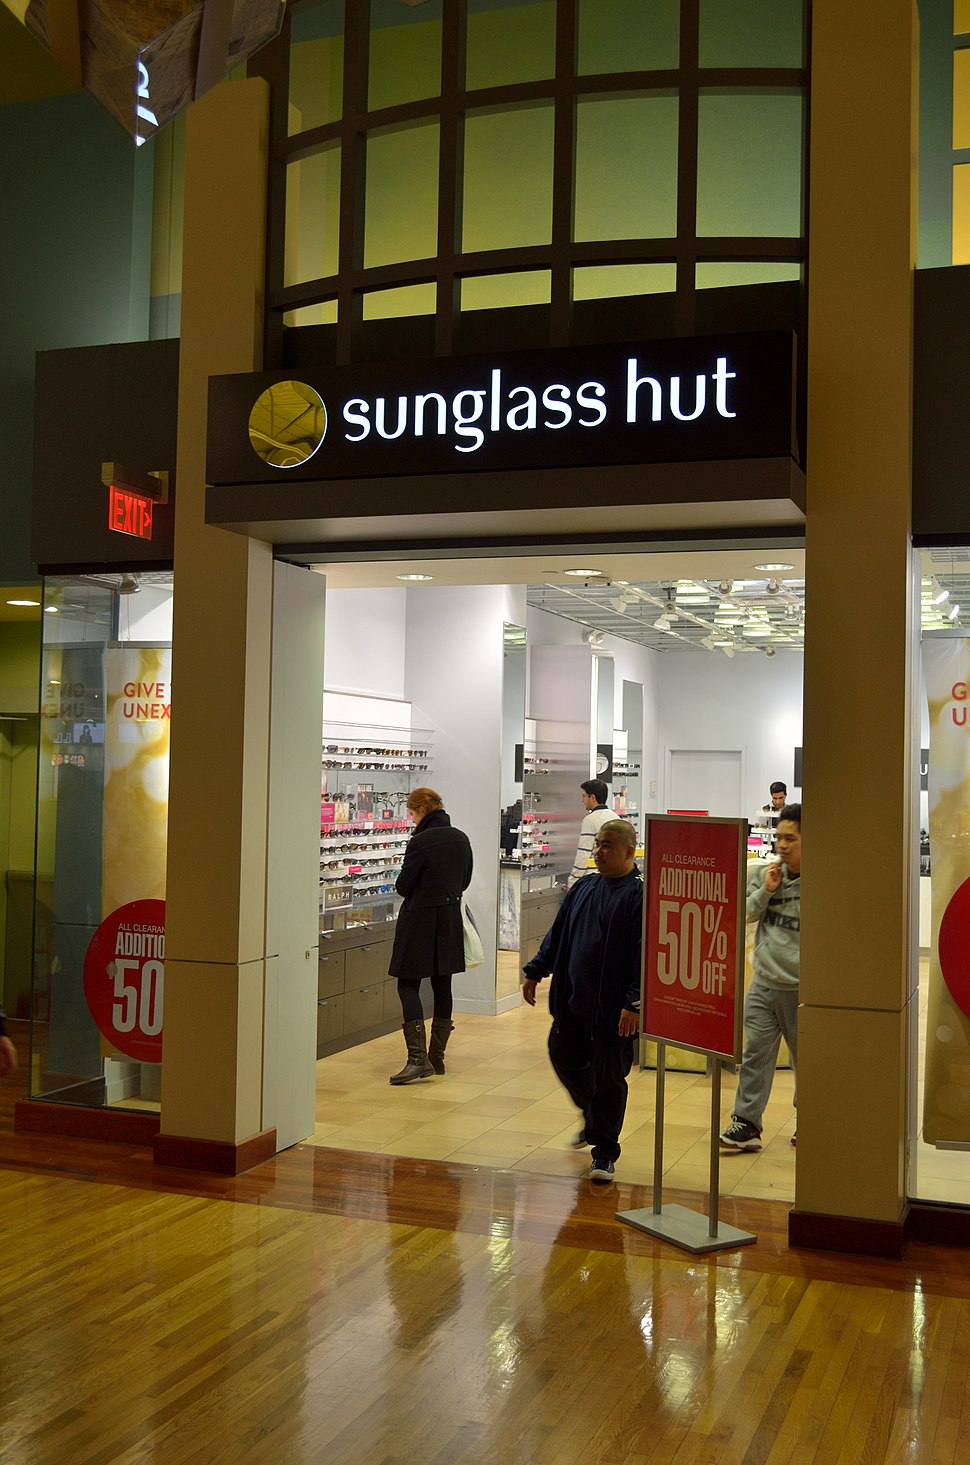 1fa8b253ed SunglassHutVaughanMills-DLighting. SunglassHutVaughanMills-DLighting. Sunglass  Hut ...